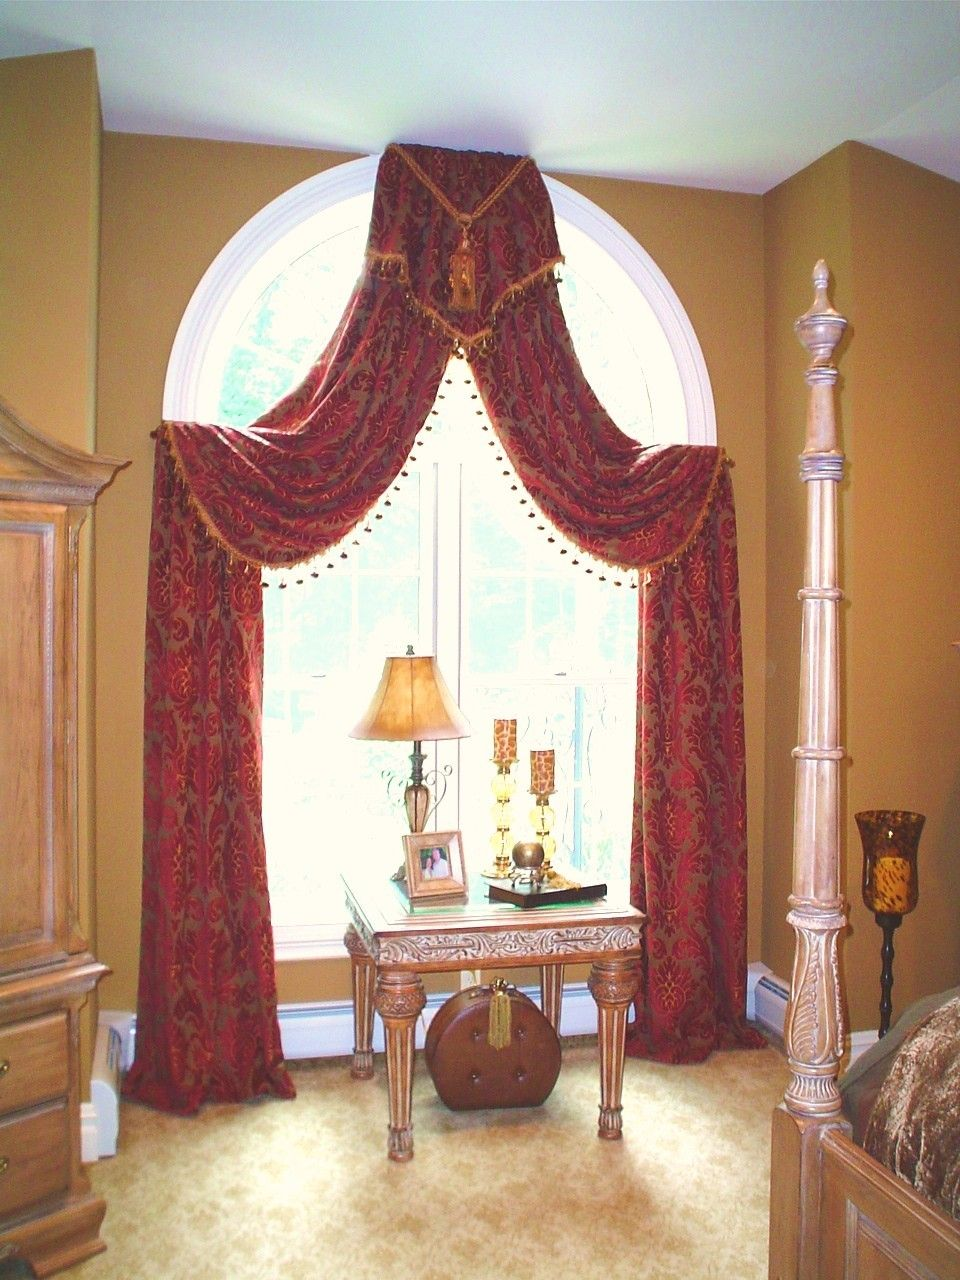 Window dressing ideas for arched windows  arched window arch window treatments window draperies curtains